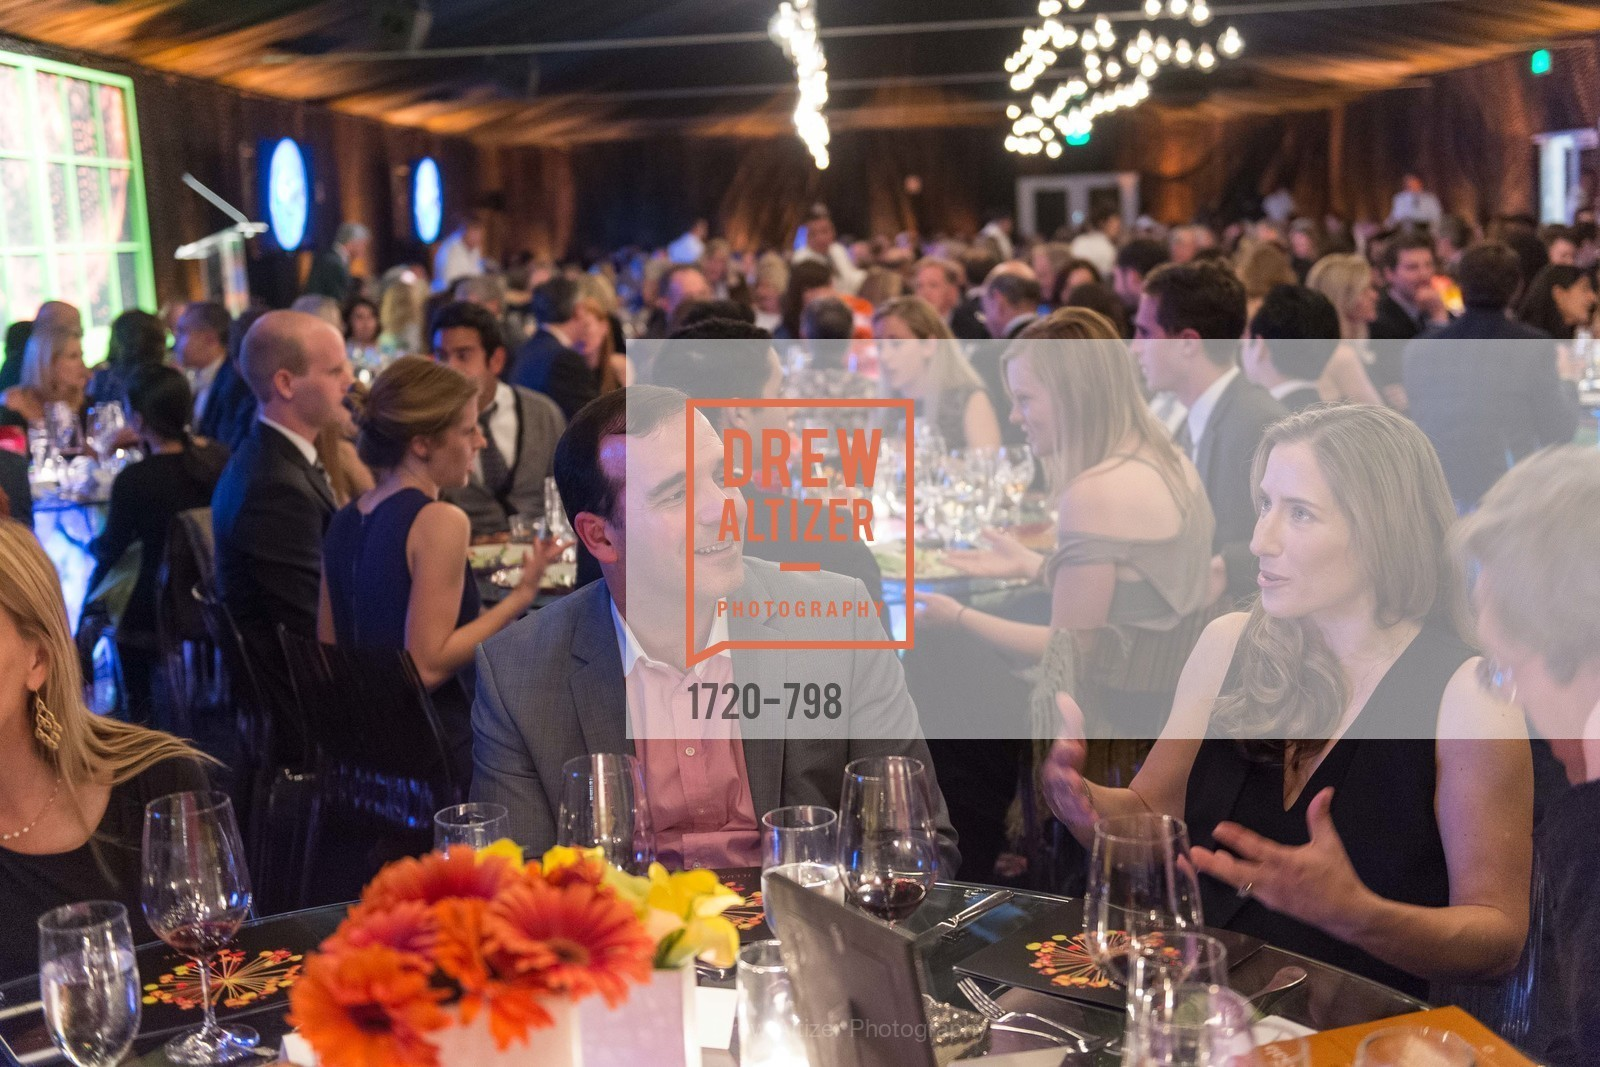 Extras, CALIFORNIA ACADEMY OF SCIENCES - Big Bang Gala 2015, April 23rd, 2015, Photo,Drew Altizer, Drew Altizer Photography, full-service agency, private events, San Francisco photographer, photographer california